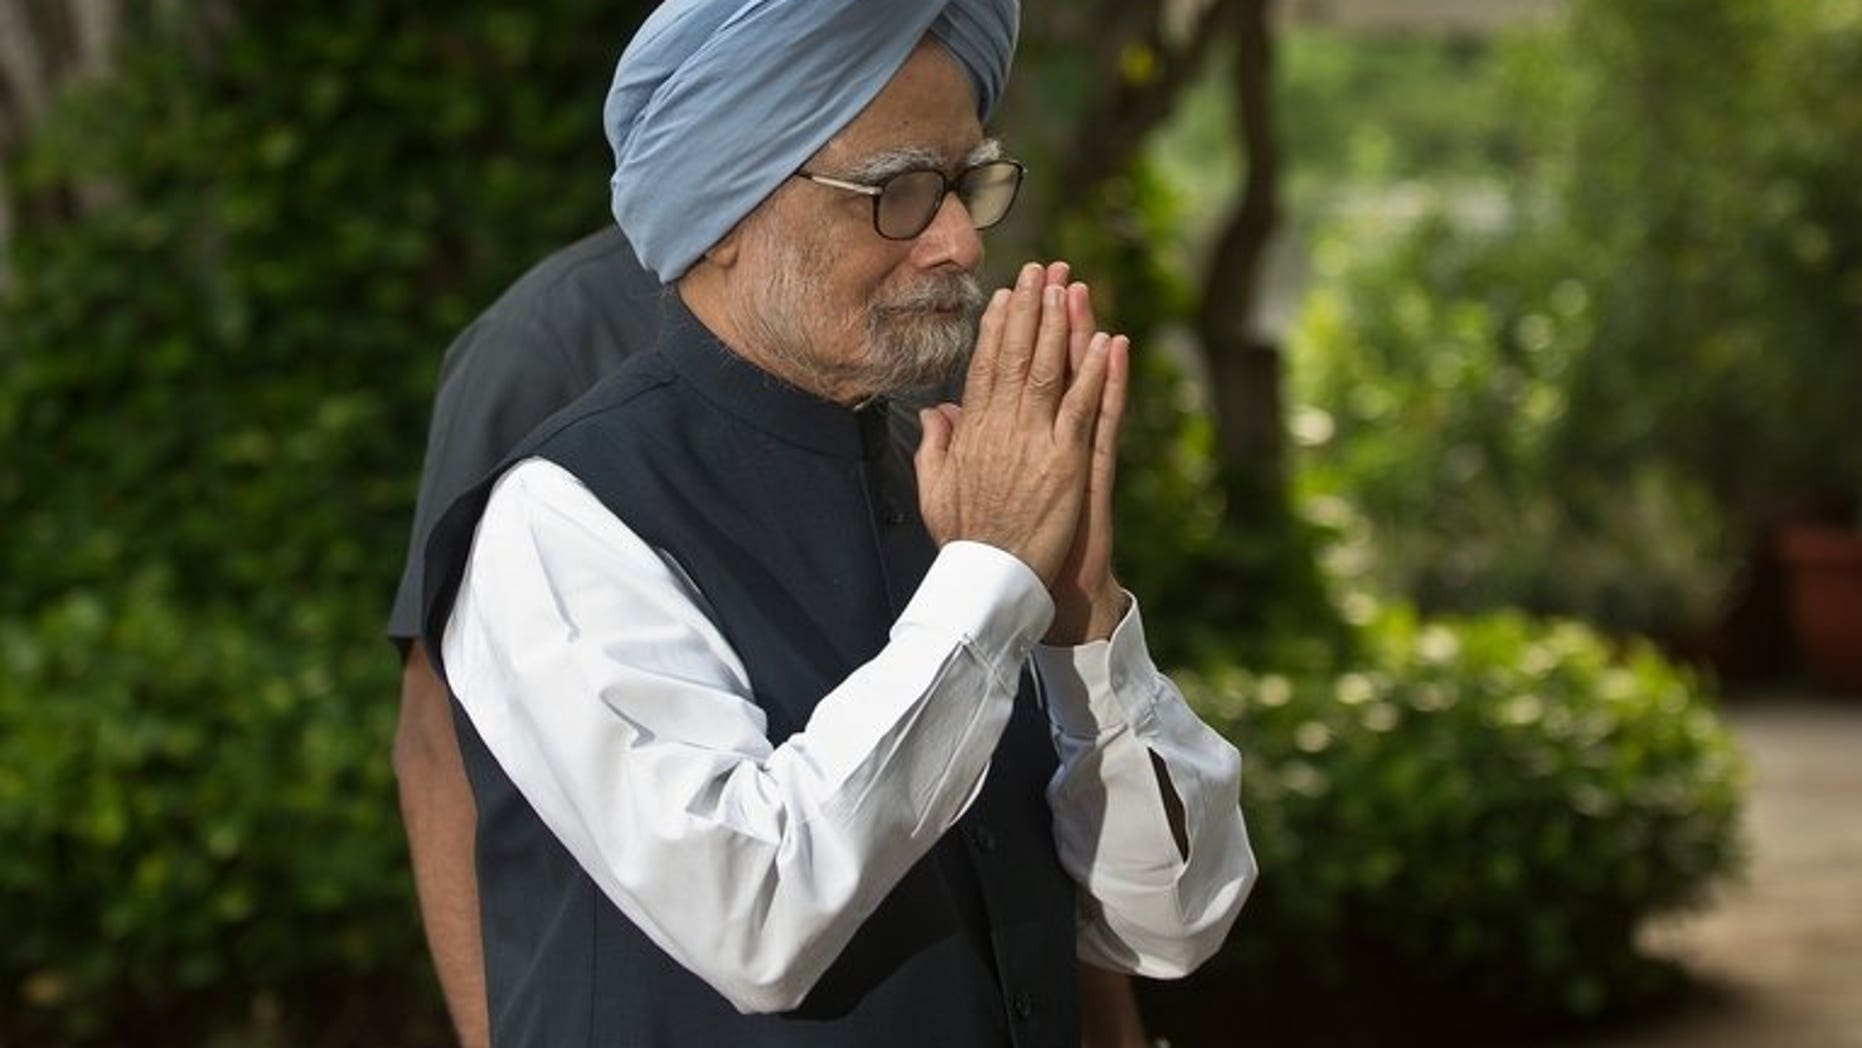 """Indian Prime Minister Manmohan Singh gestures as he arrives for a meeting in New Delhi, on July 30, 2013. Singh has appealed to the opposition to make the next session of parliament """"productive"""" after the last one was cut short by heated rows over allegations of government corruption."""